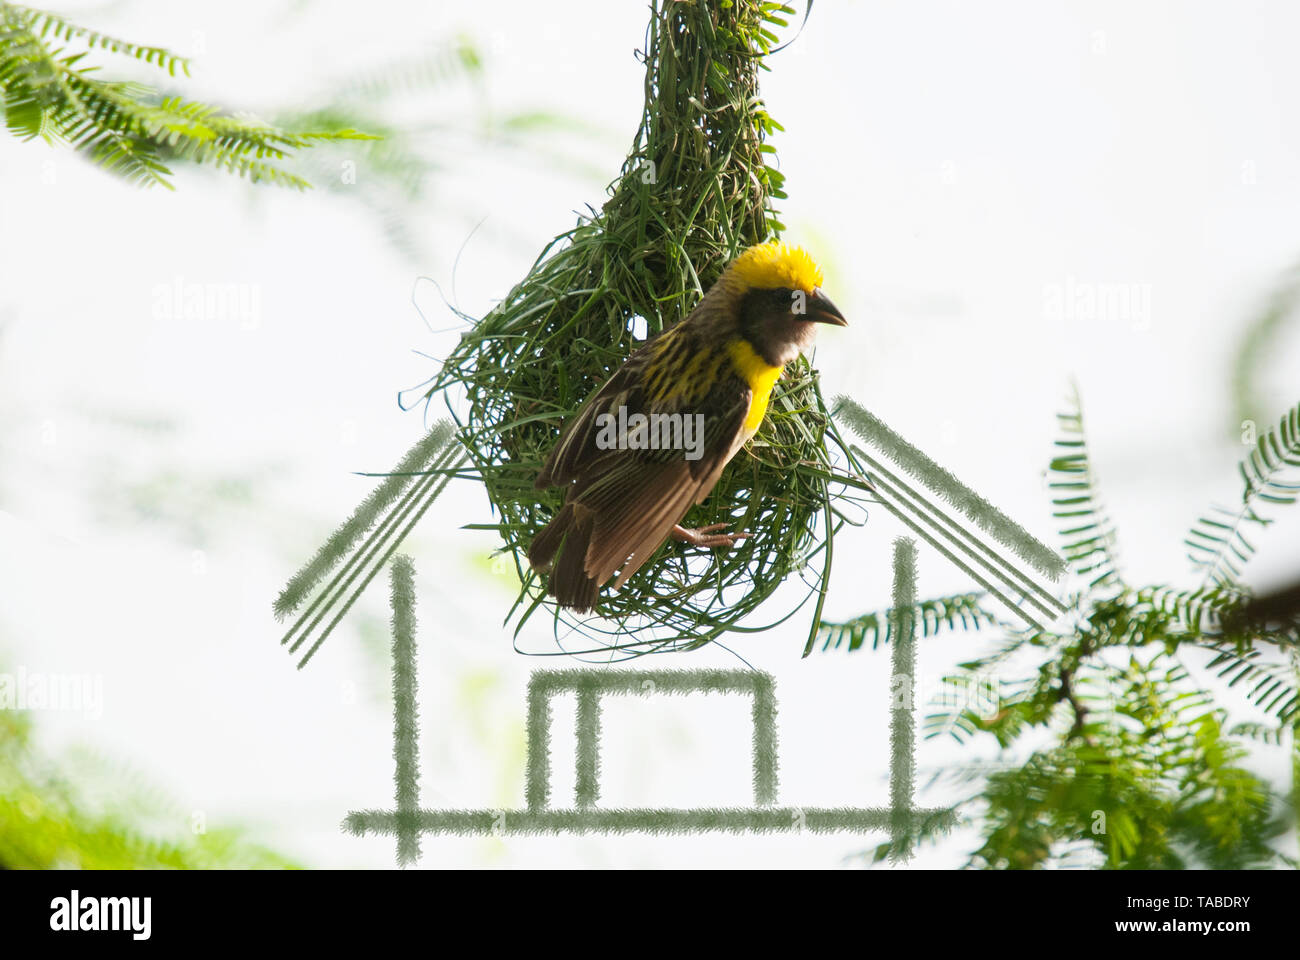 House building concept - baya weaver bird building nest  with grass strips - Stock Image